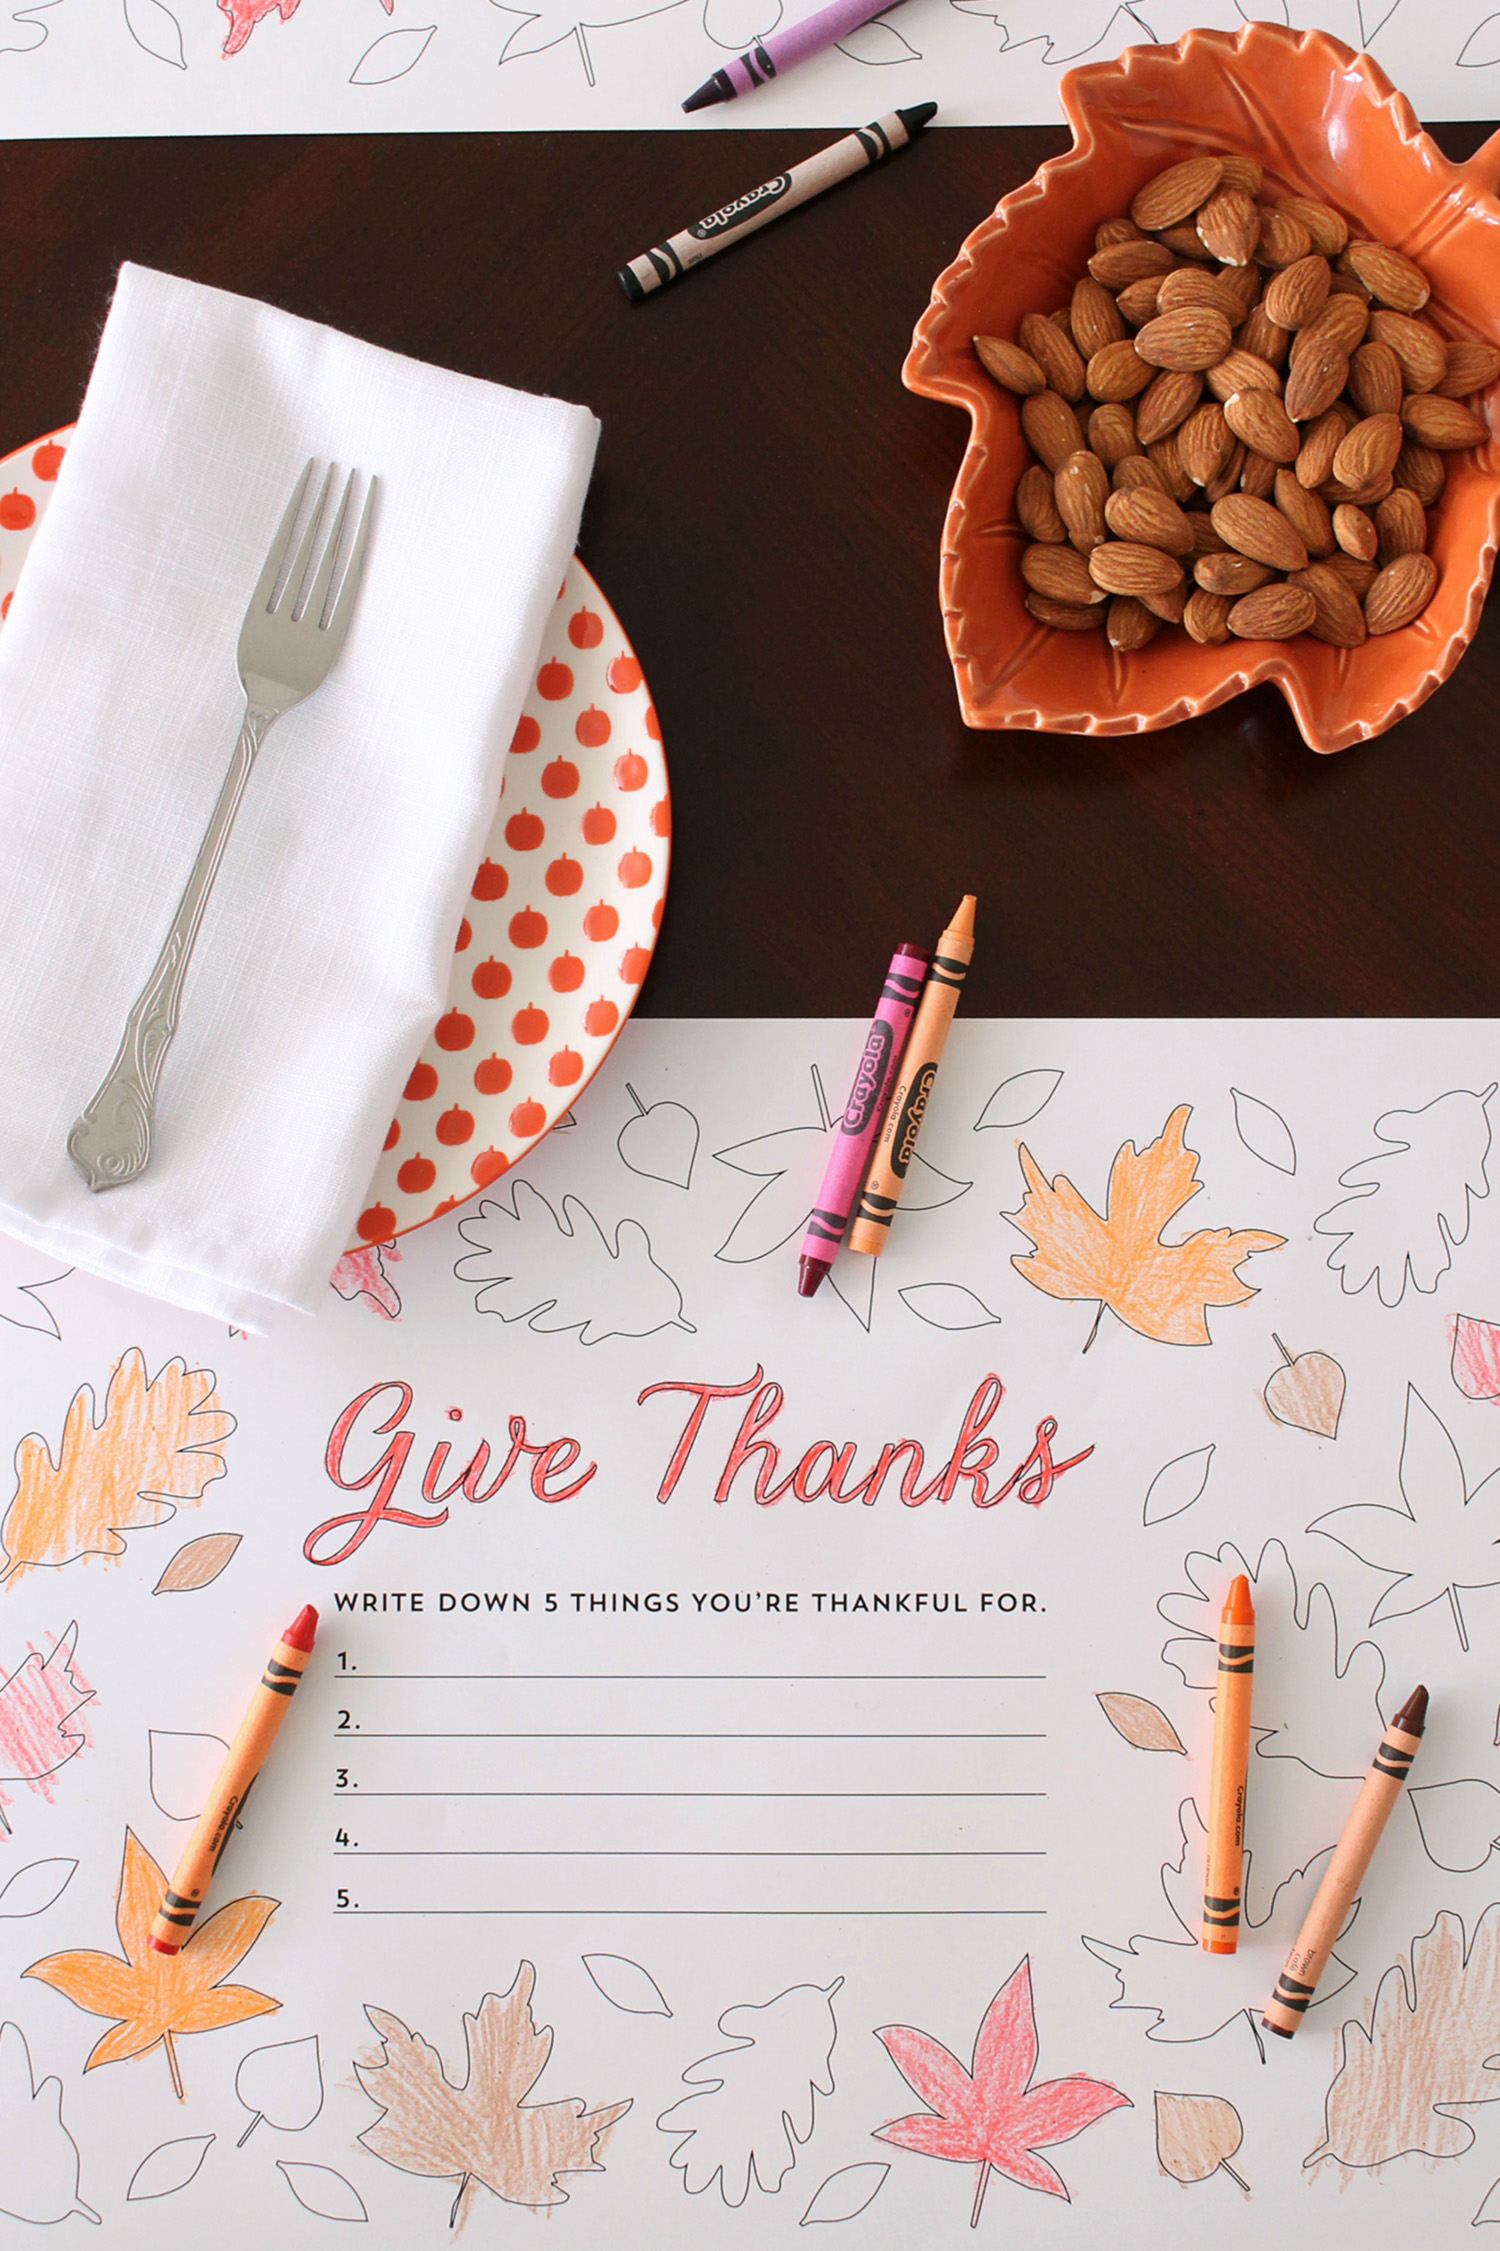 Give Thanks place mats